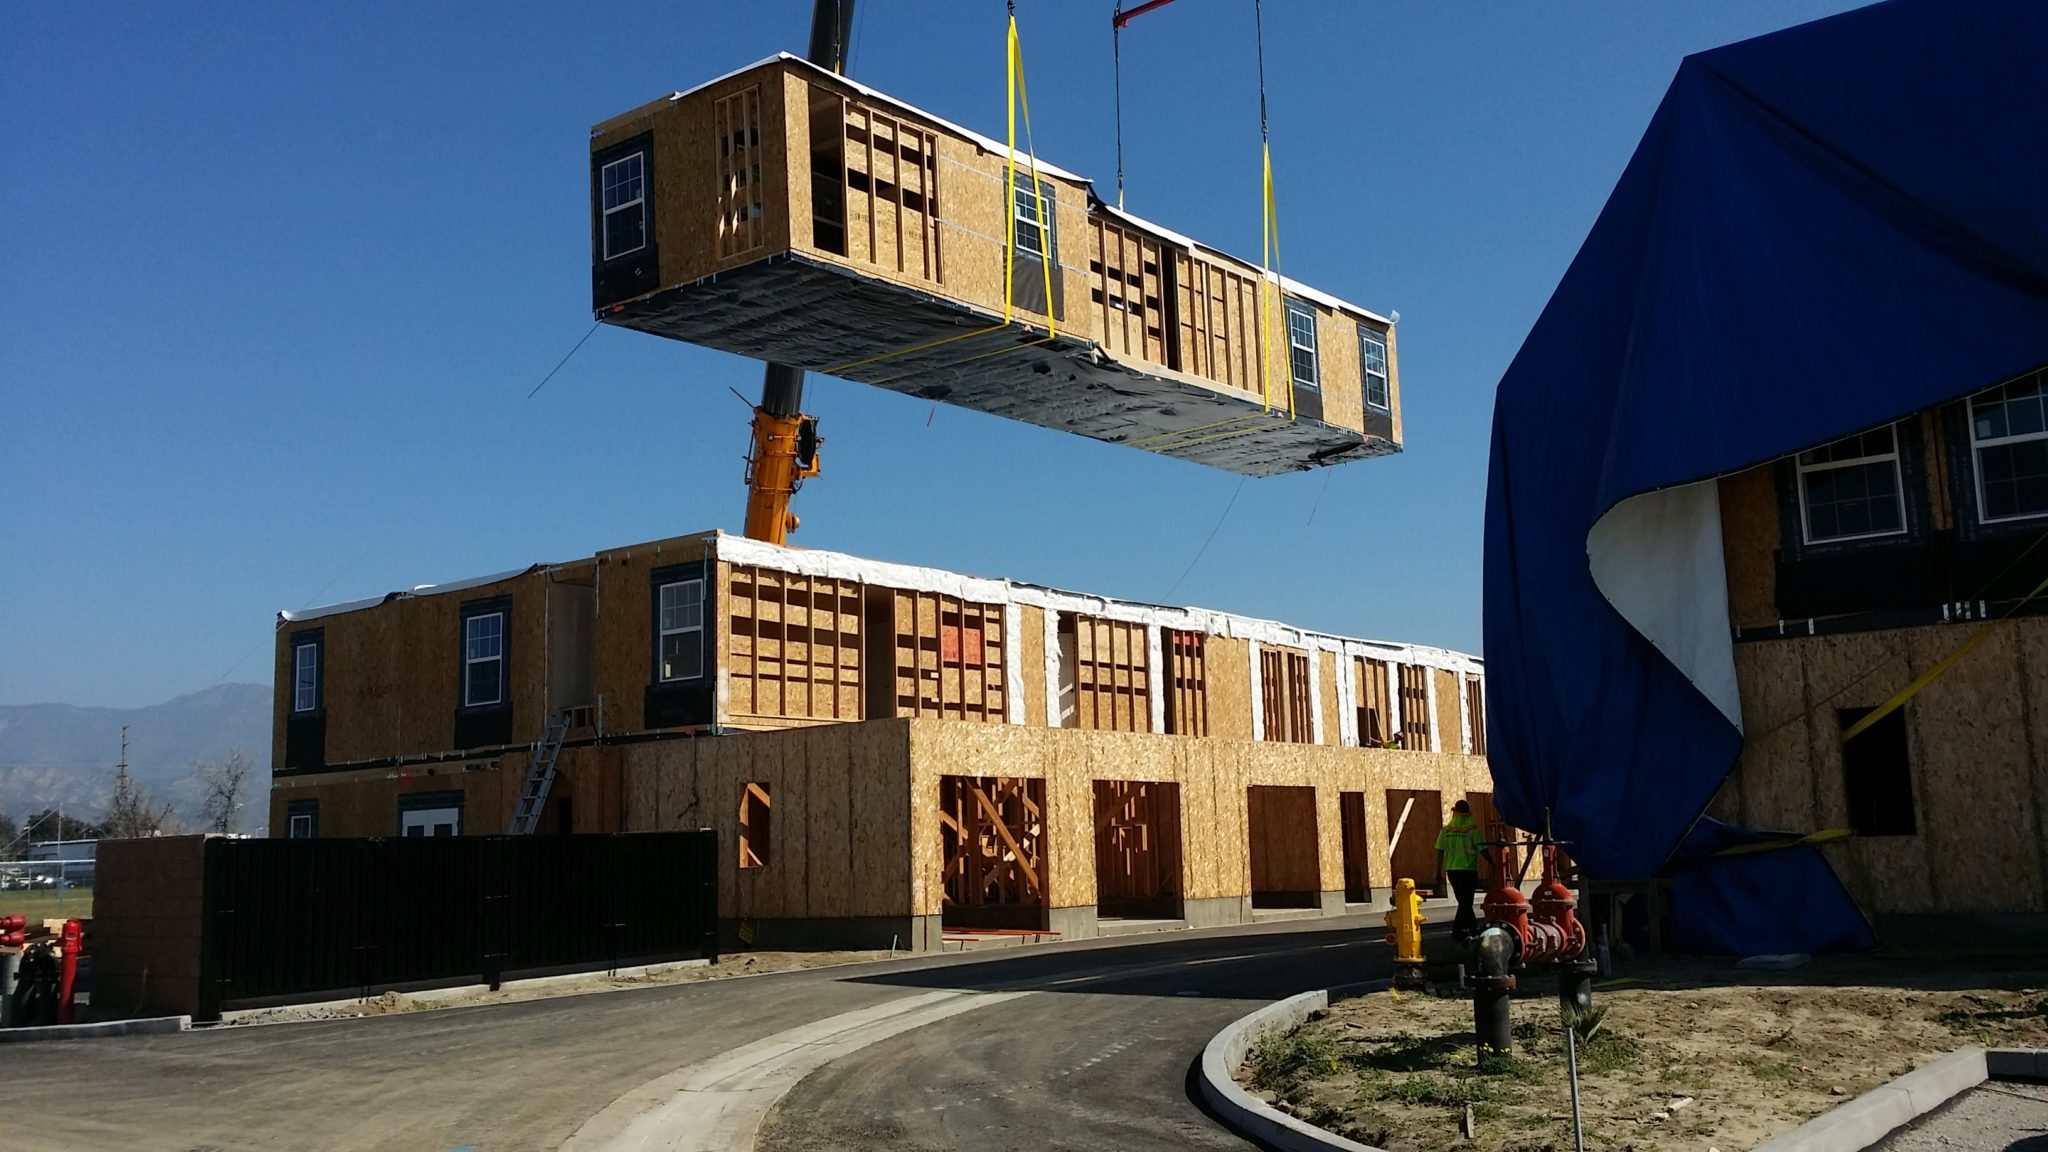 Southern california s largest modular affordable housing for Two family modular homes